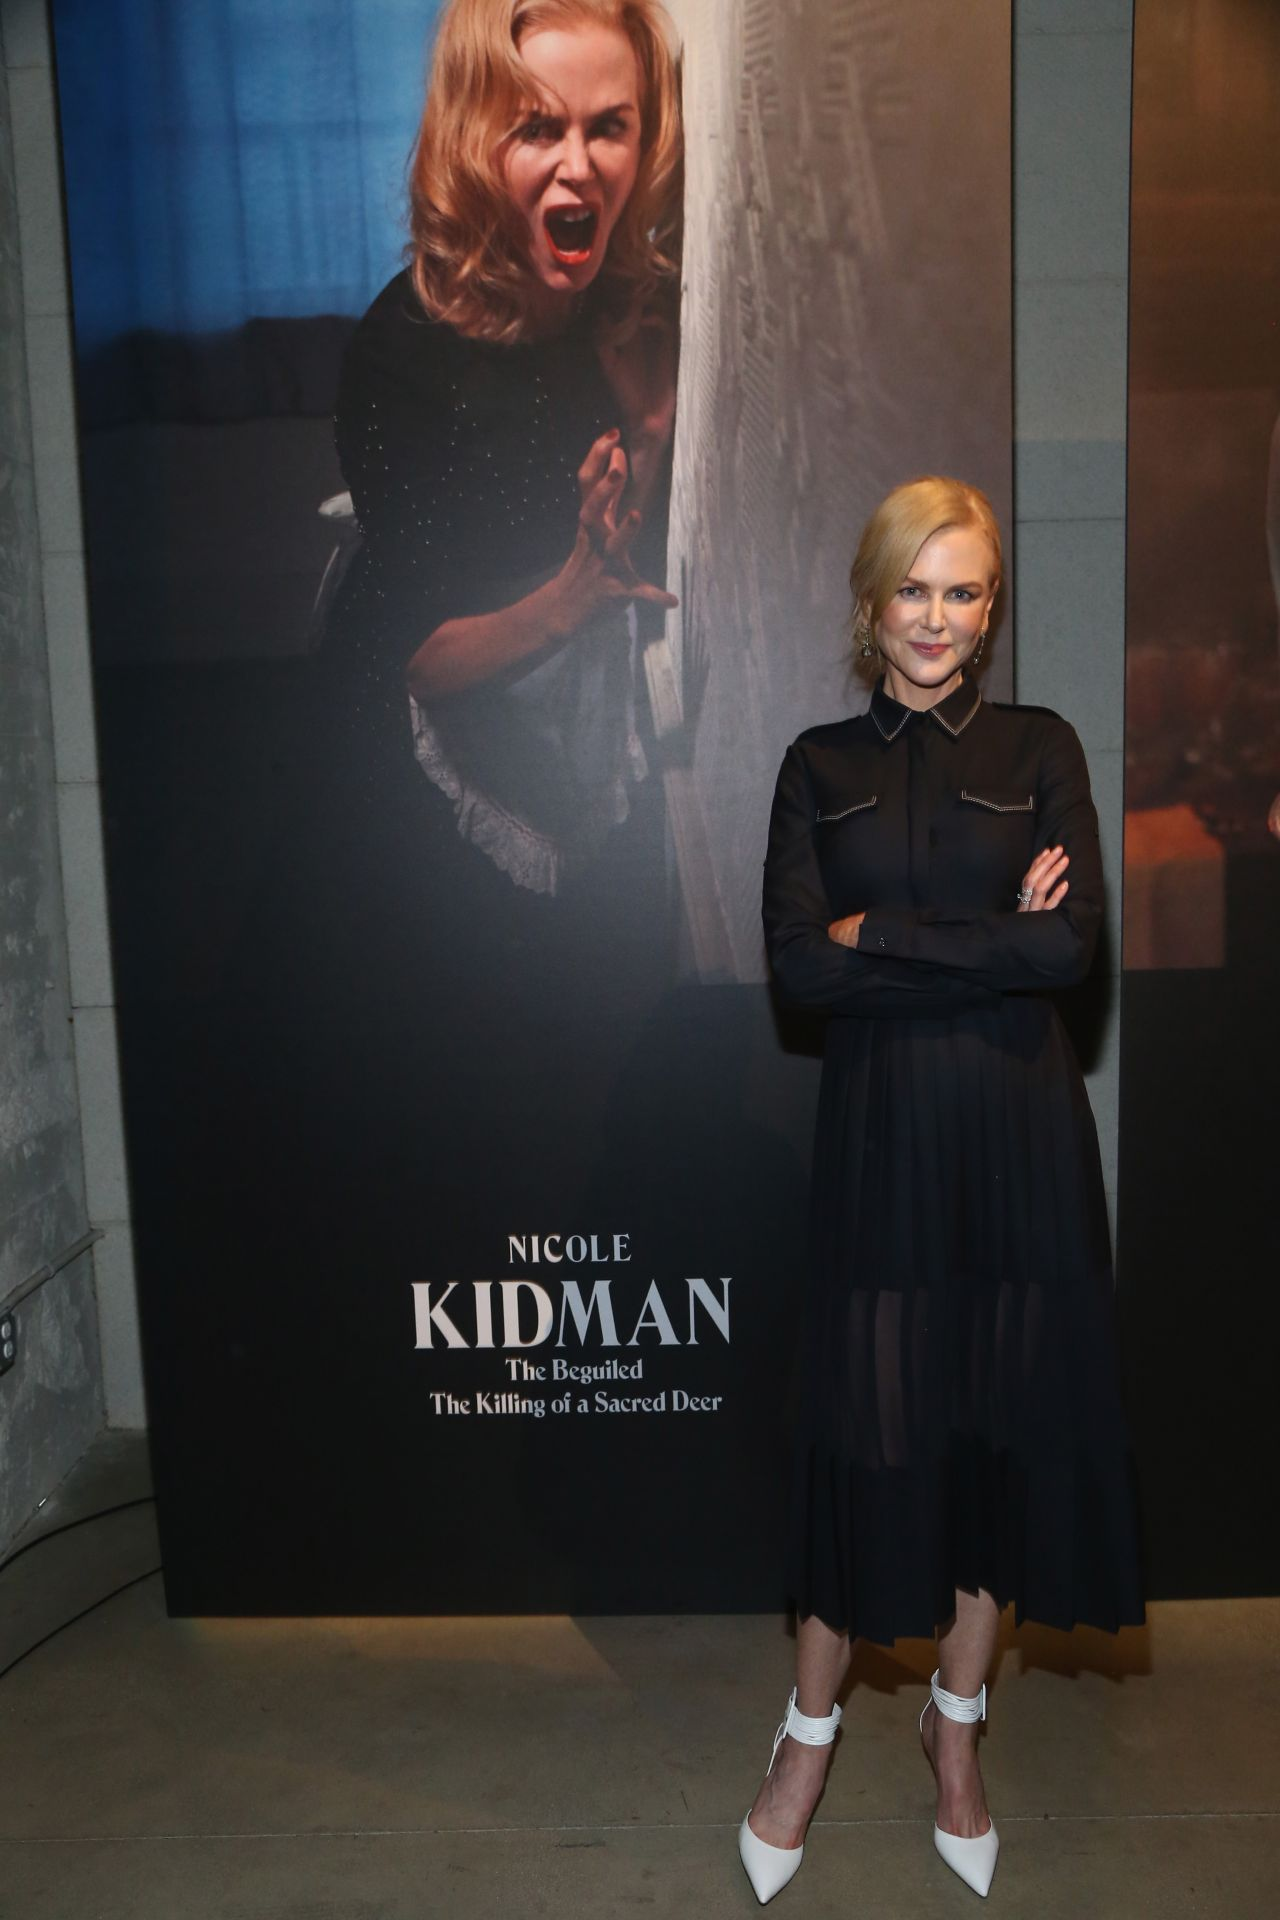 http://celebmafia.com/wp-content/uploads/2017/12/nicole-kidman-he-great-performers-issue-in-los-angeles-2.jpg